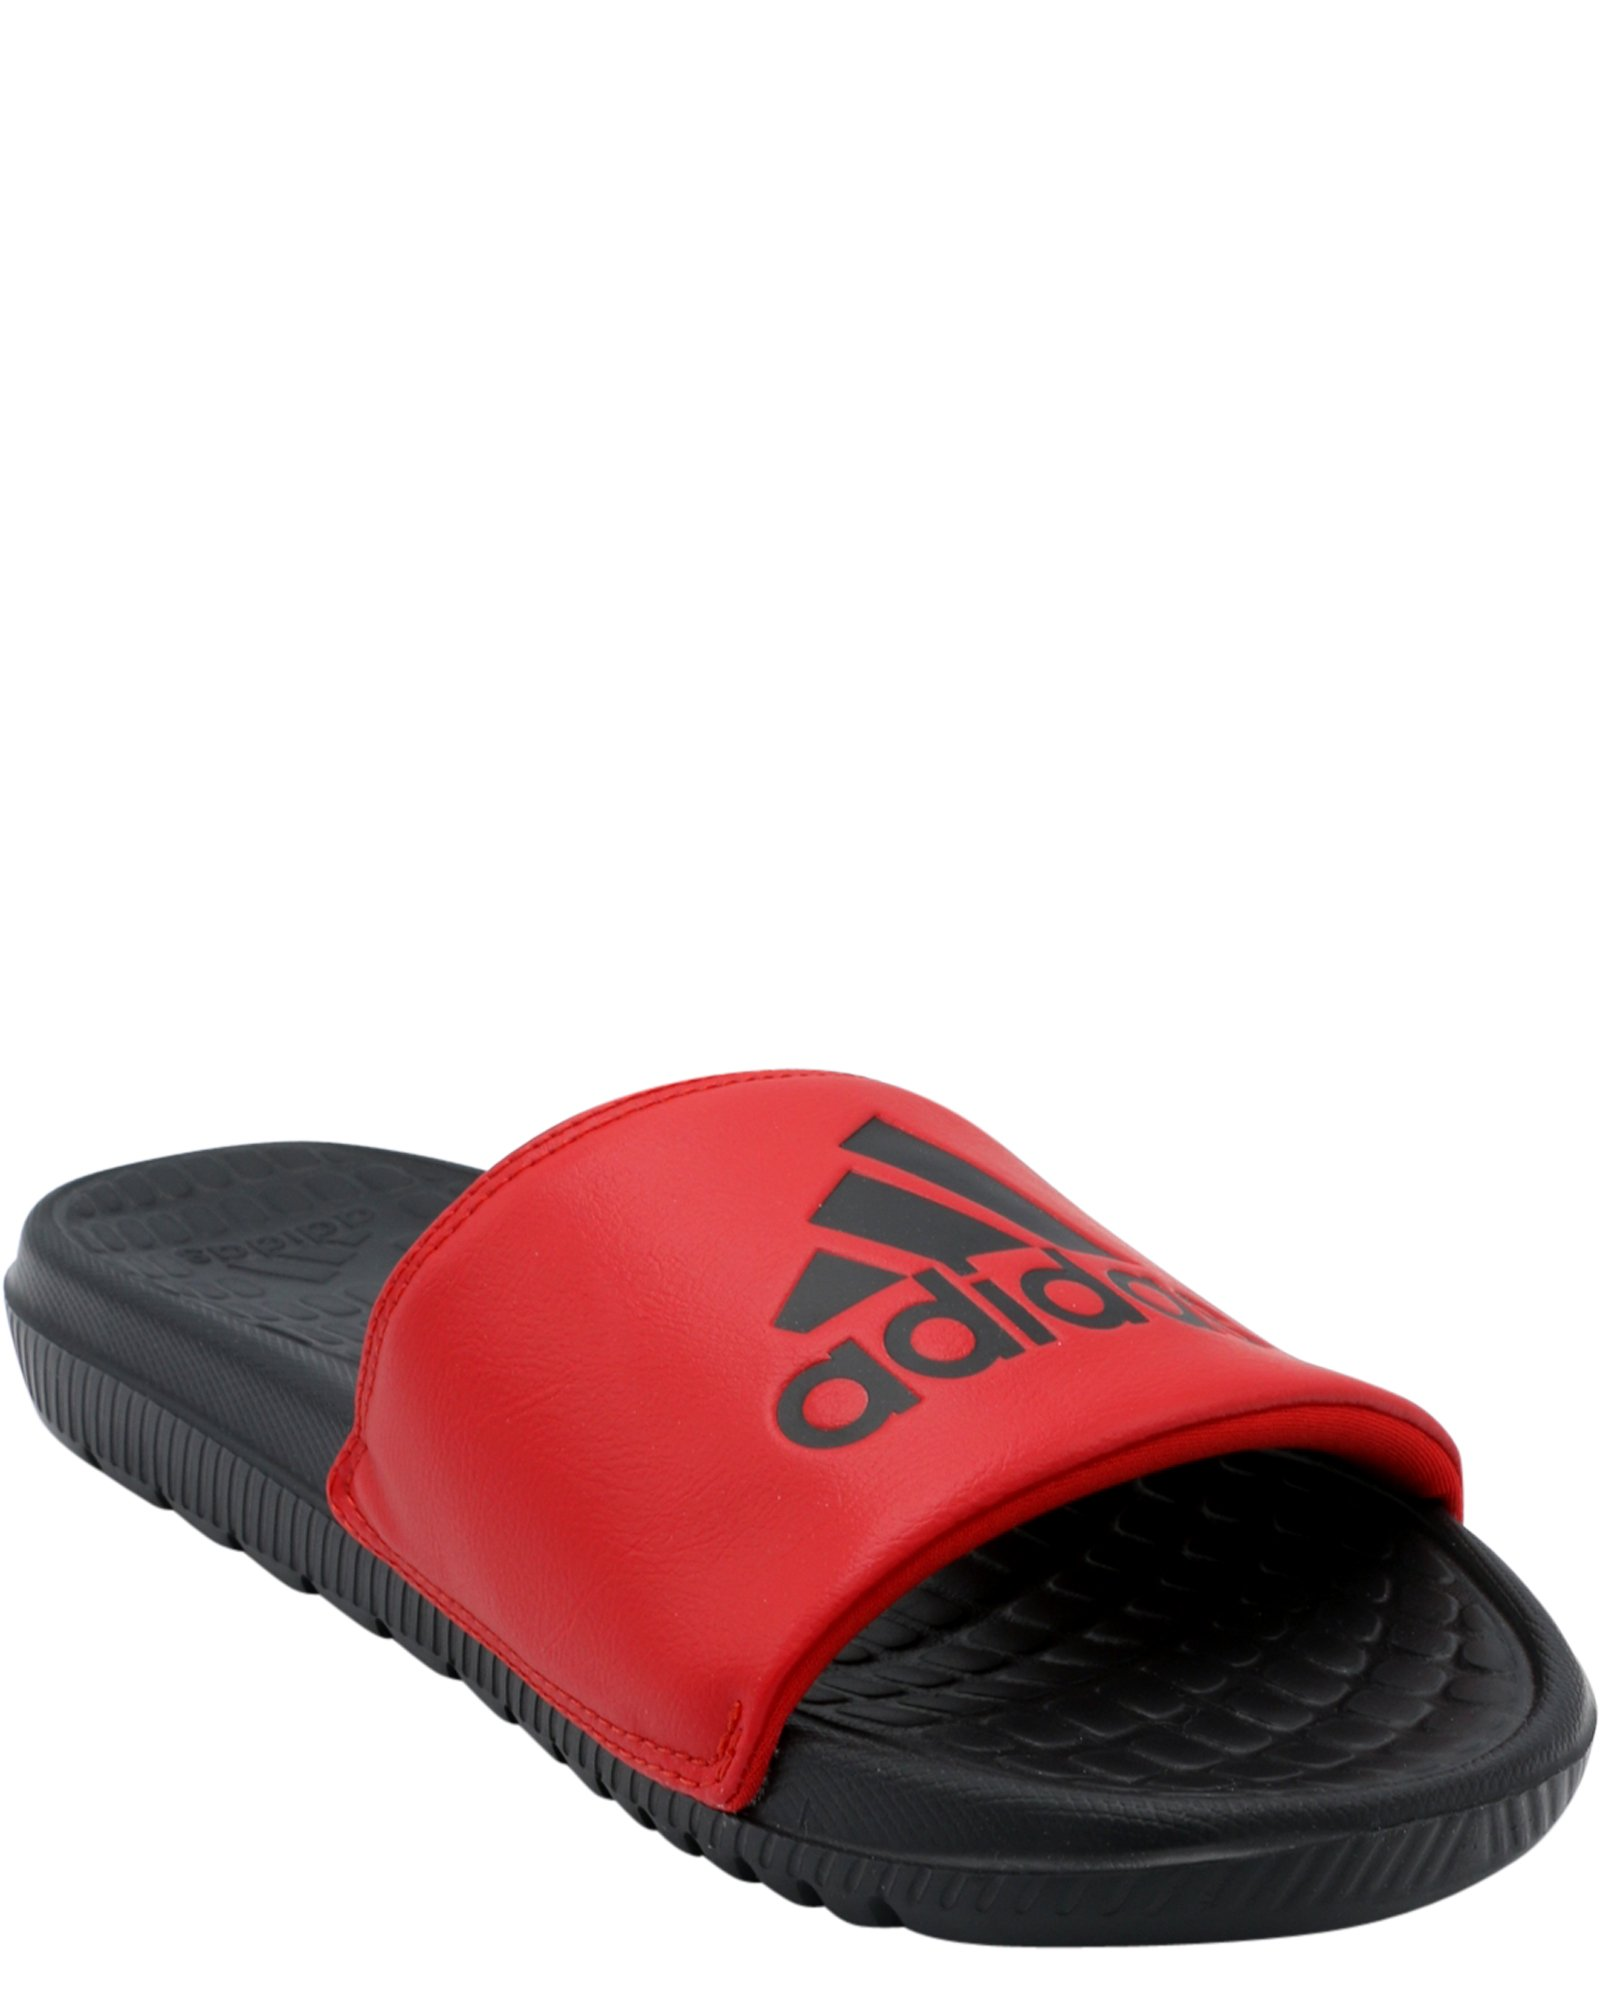 e2f5cad8804ee7 Galleon - Adidas Men s Voloomix Slide Sandal